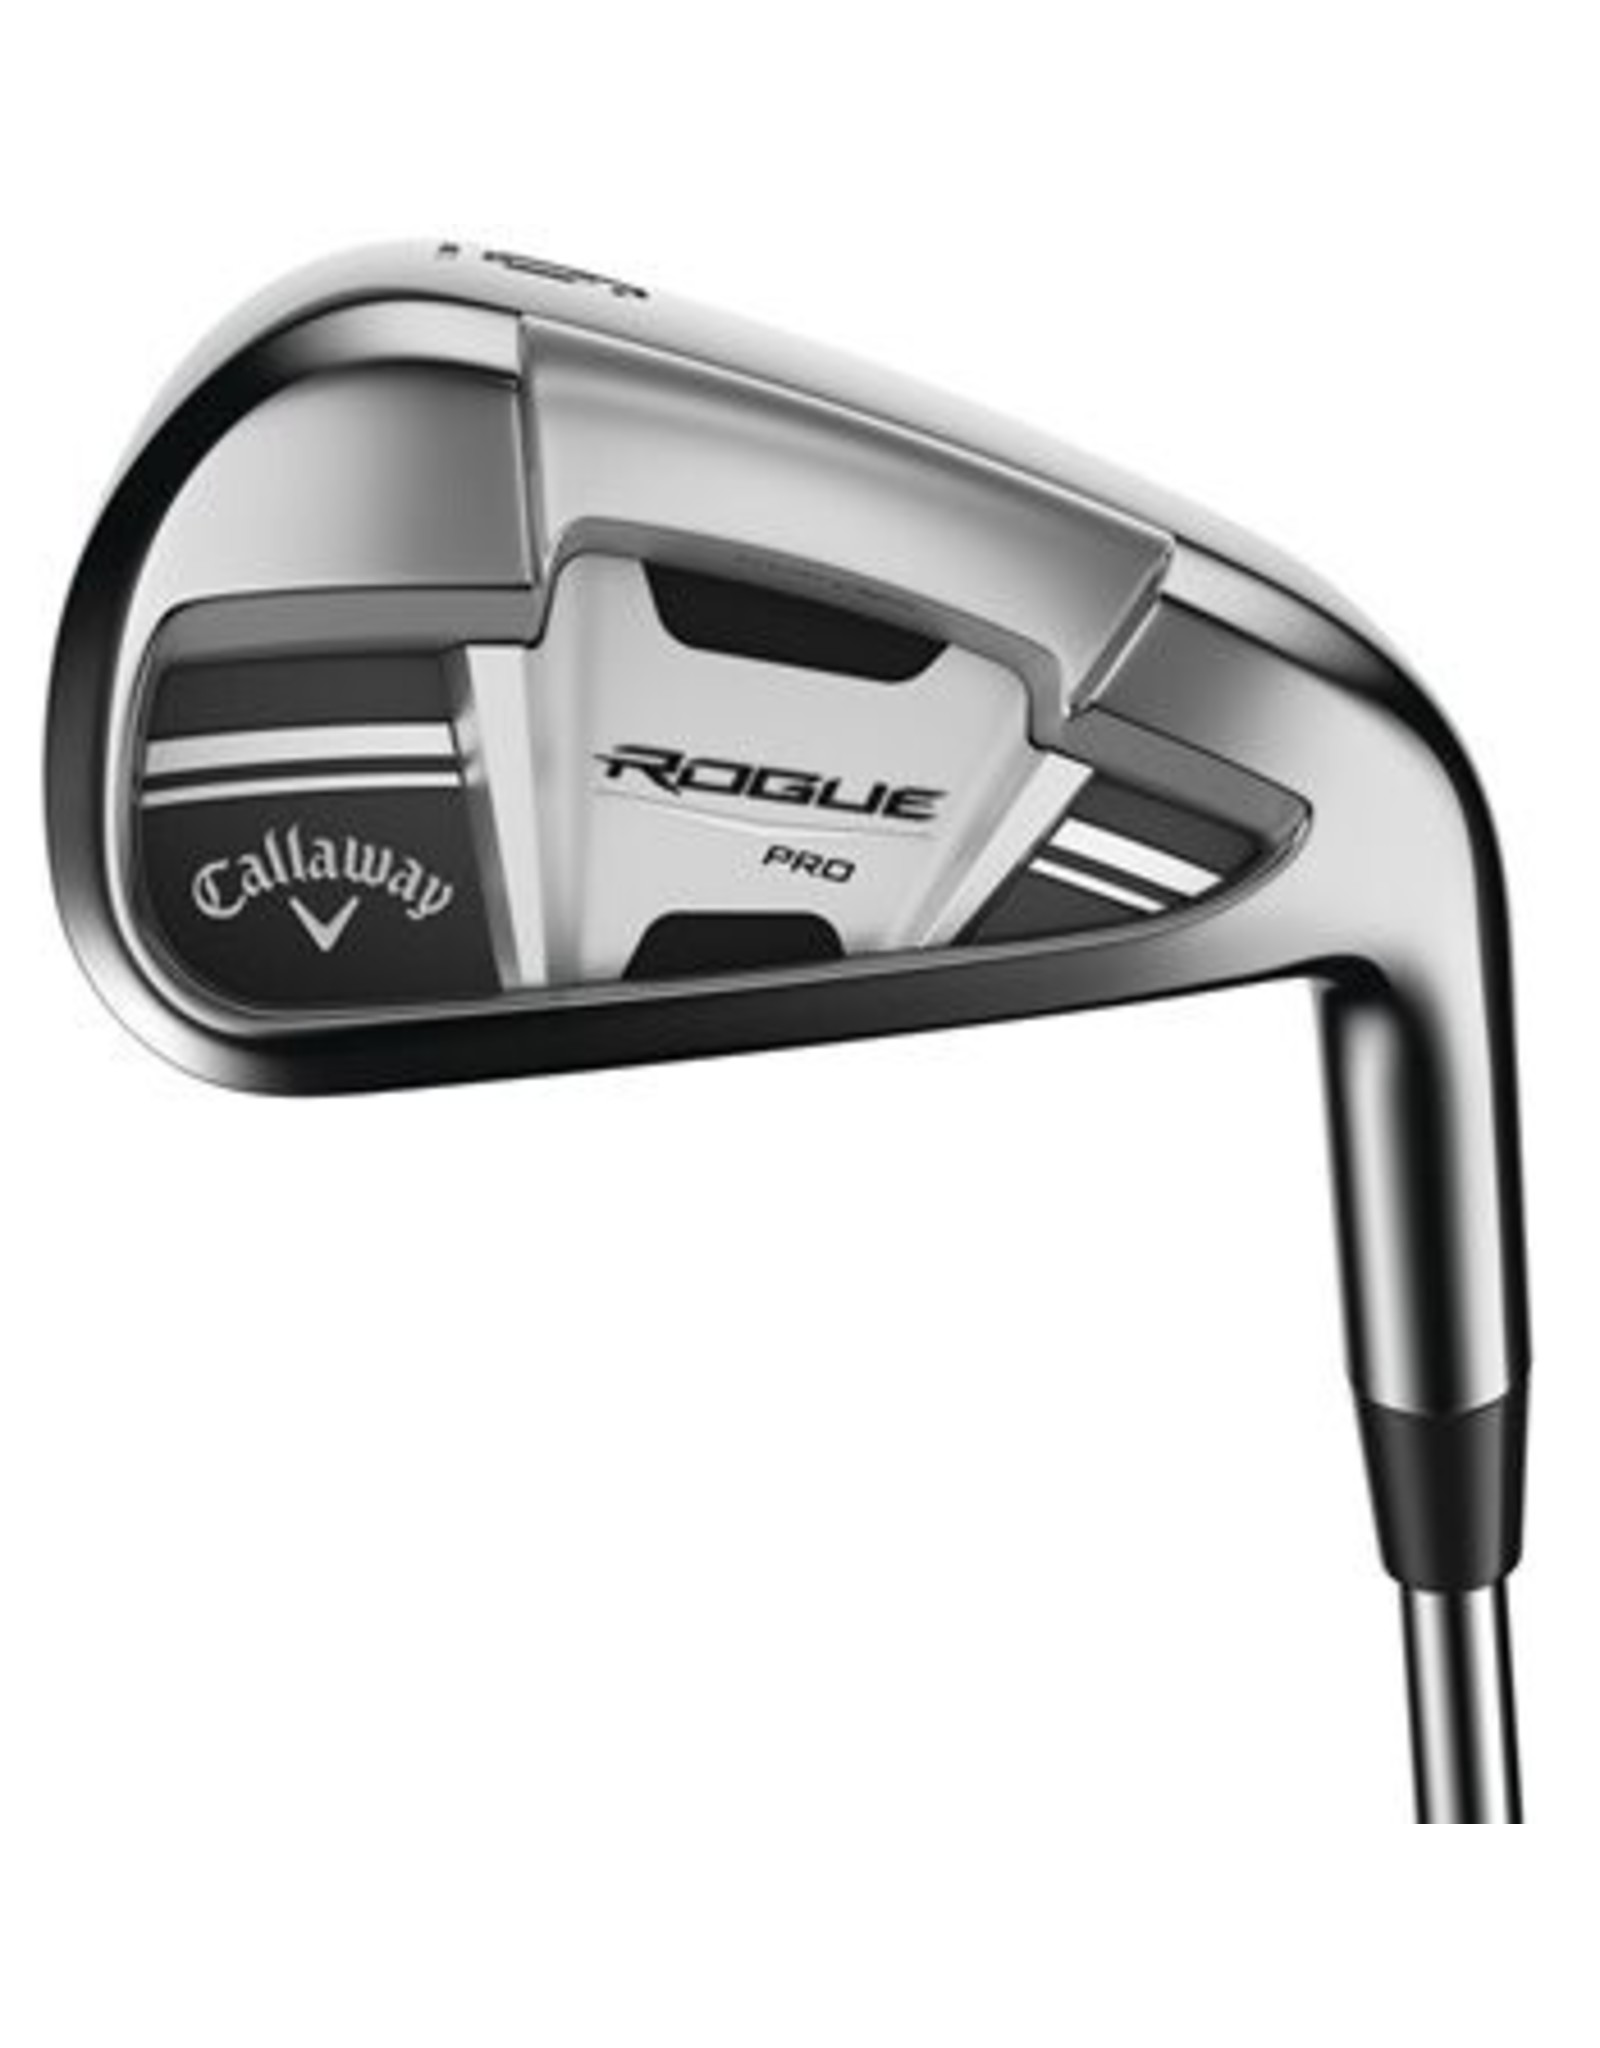 Callaway Used Callaway Rogue Pro Irons RH 6-PW